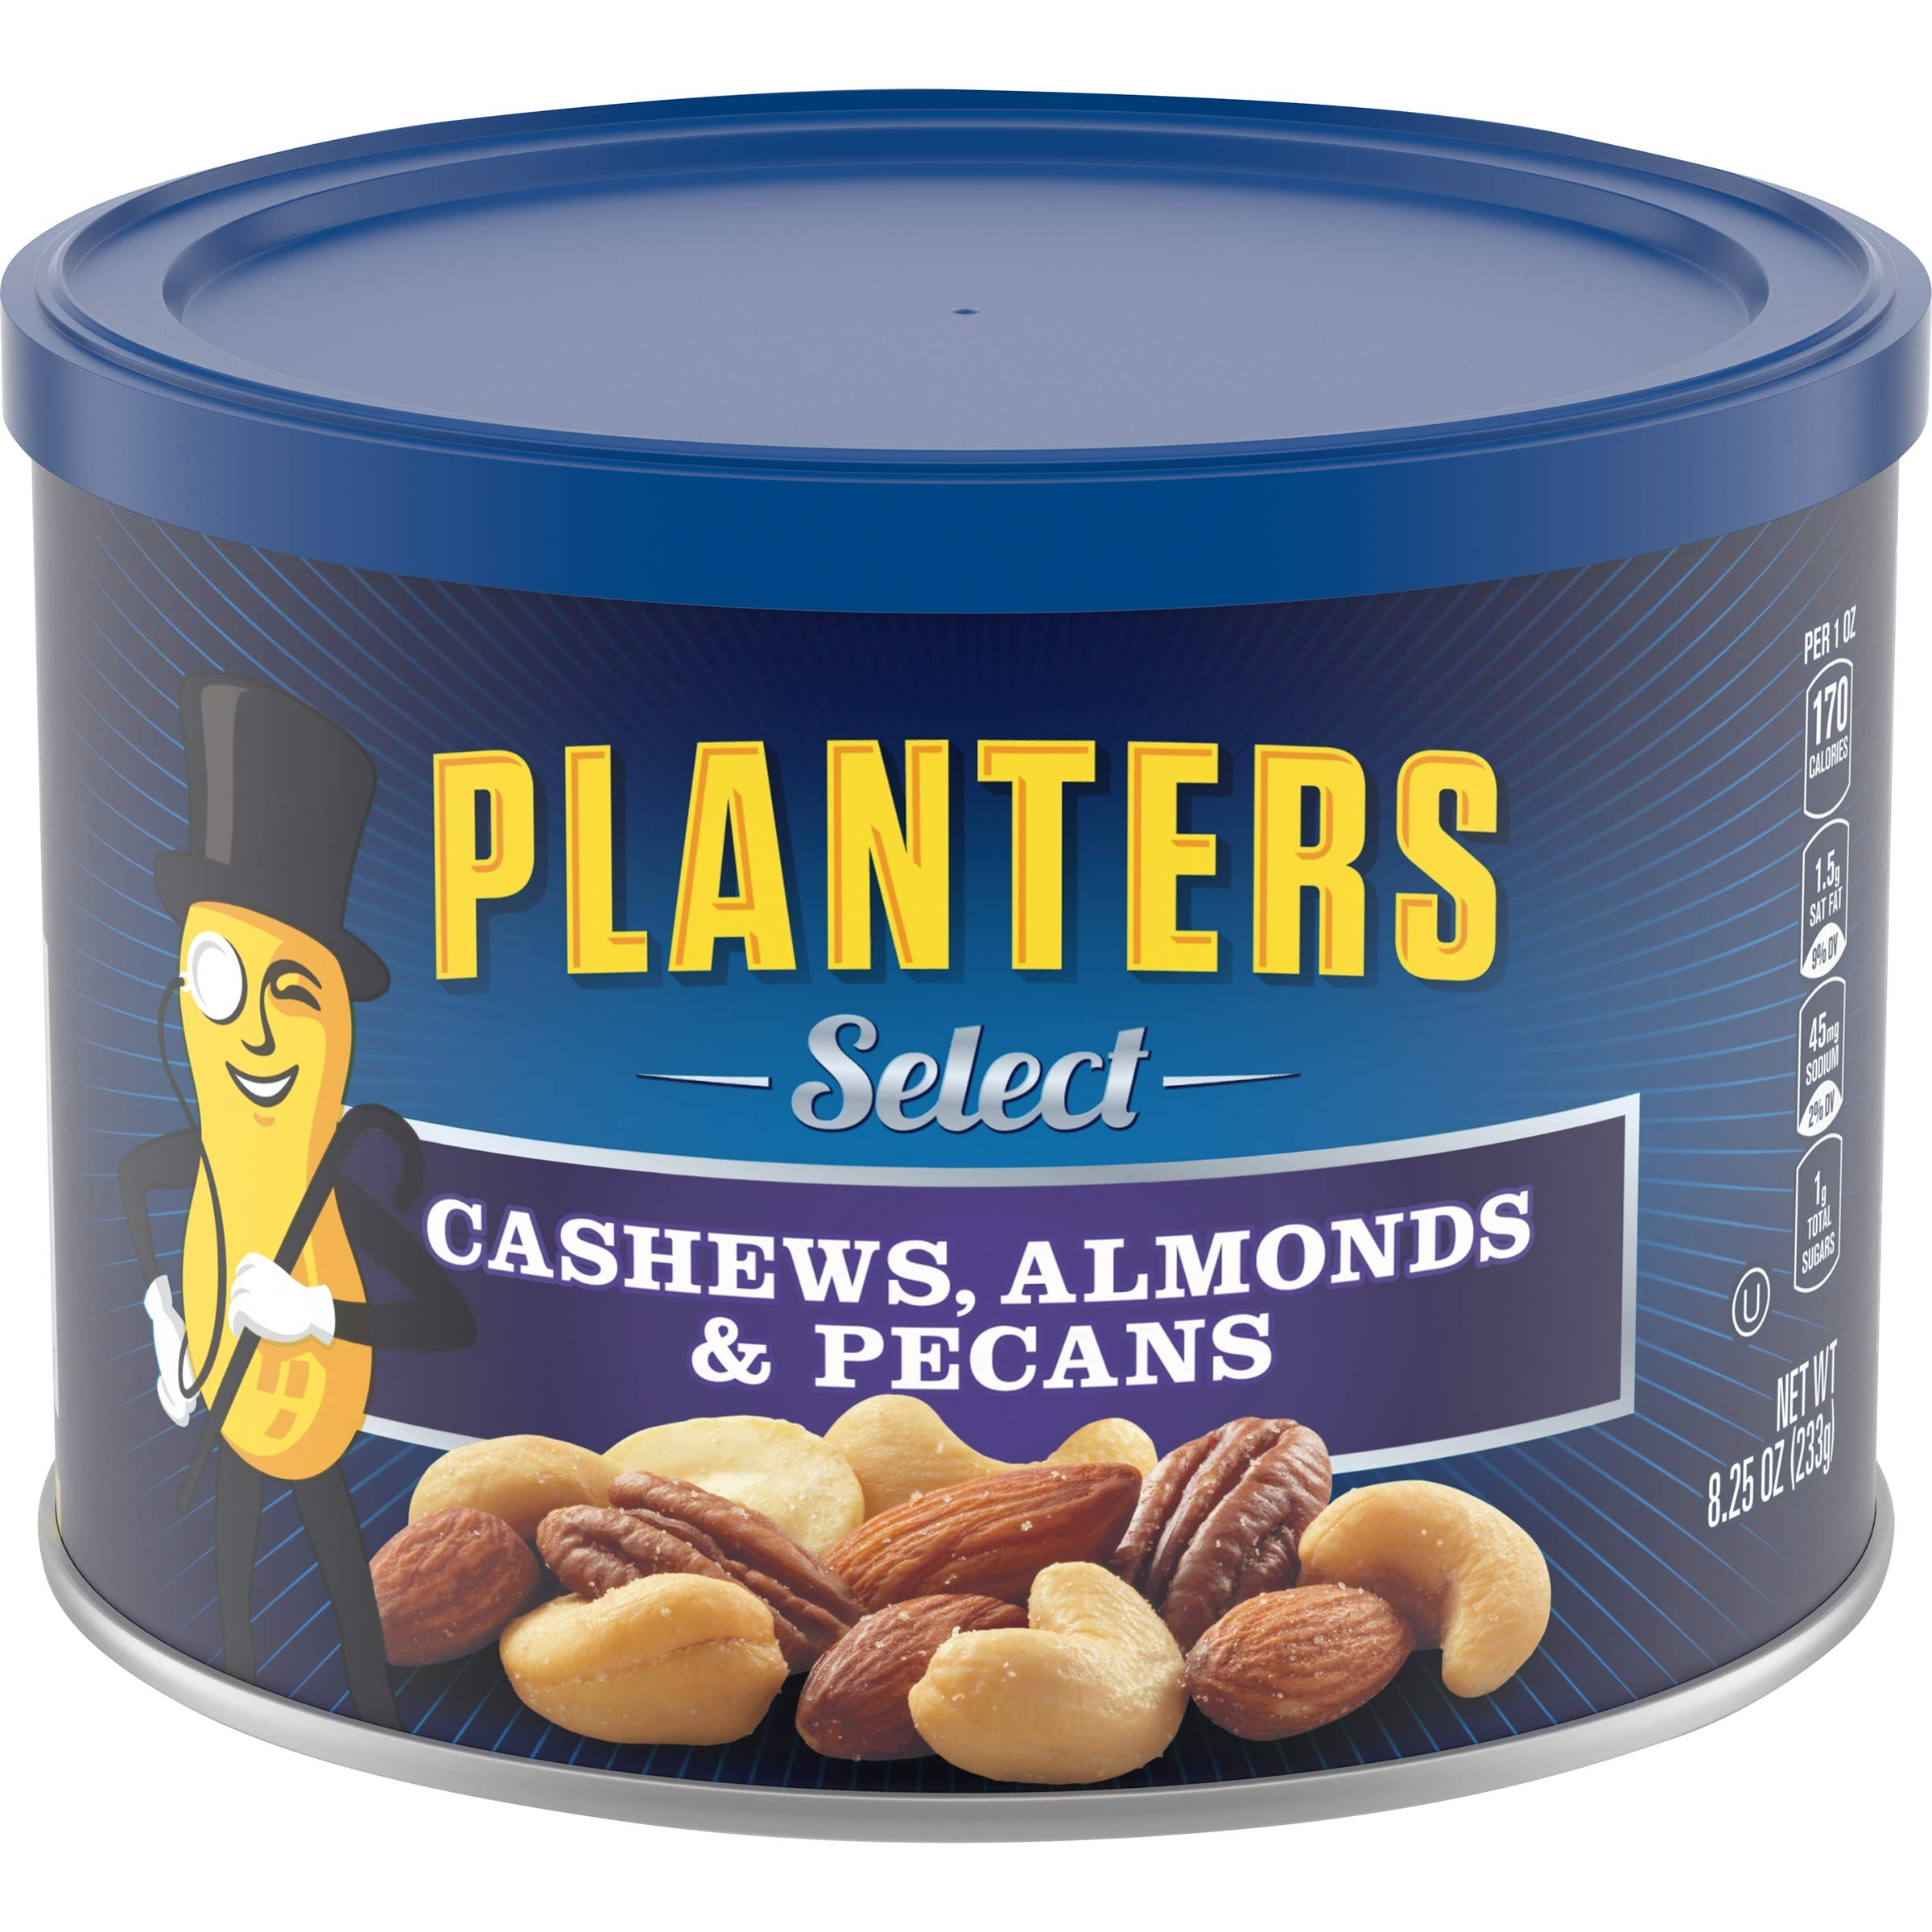 Planters Select Almonds Cashews & Pecans (24.75 oz Canister, Pack of 3) by Planters